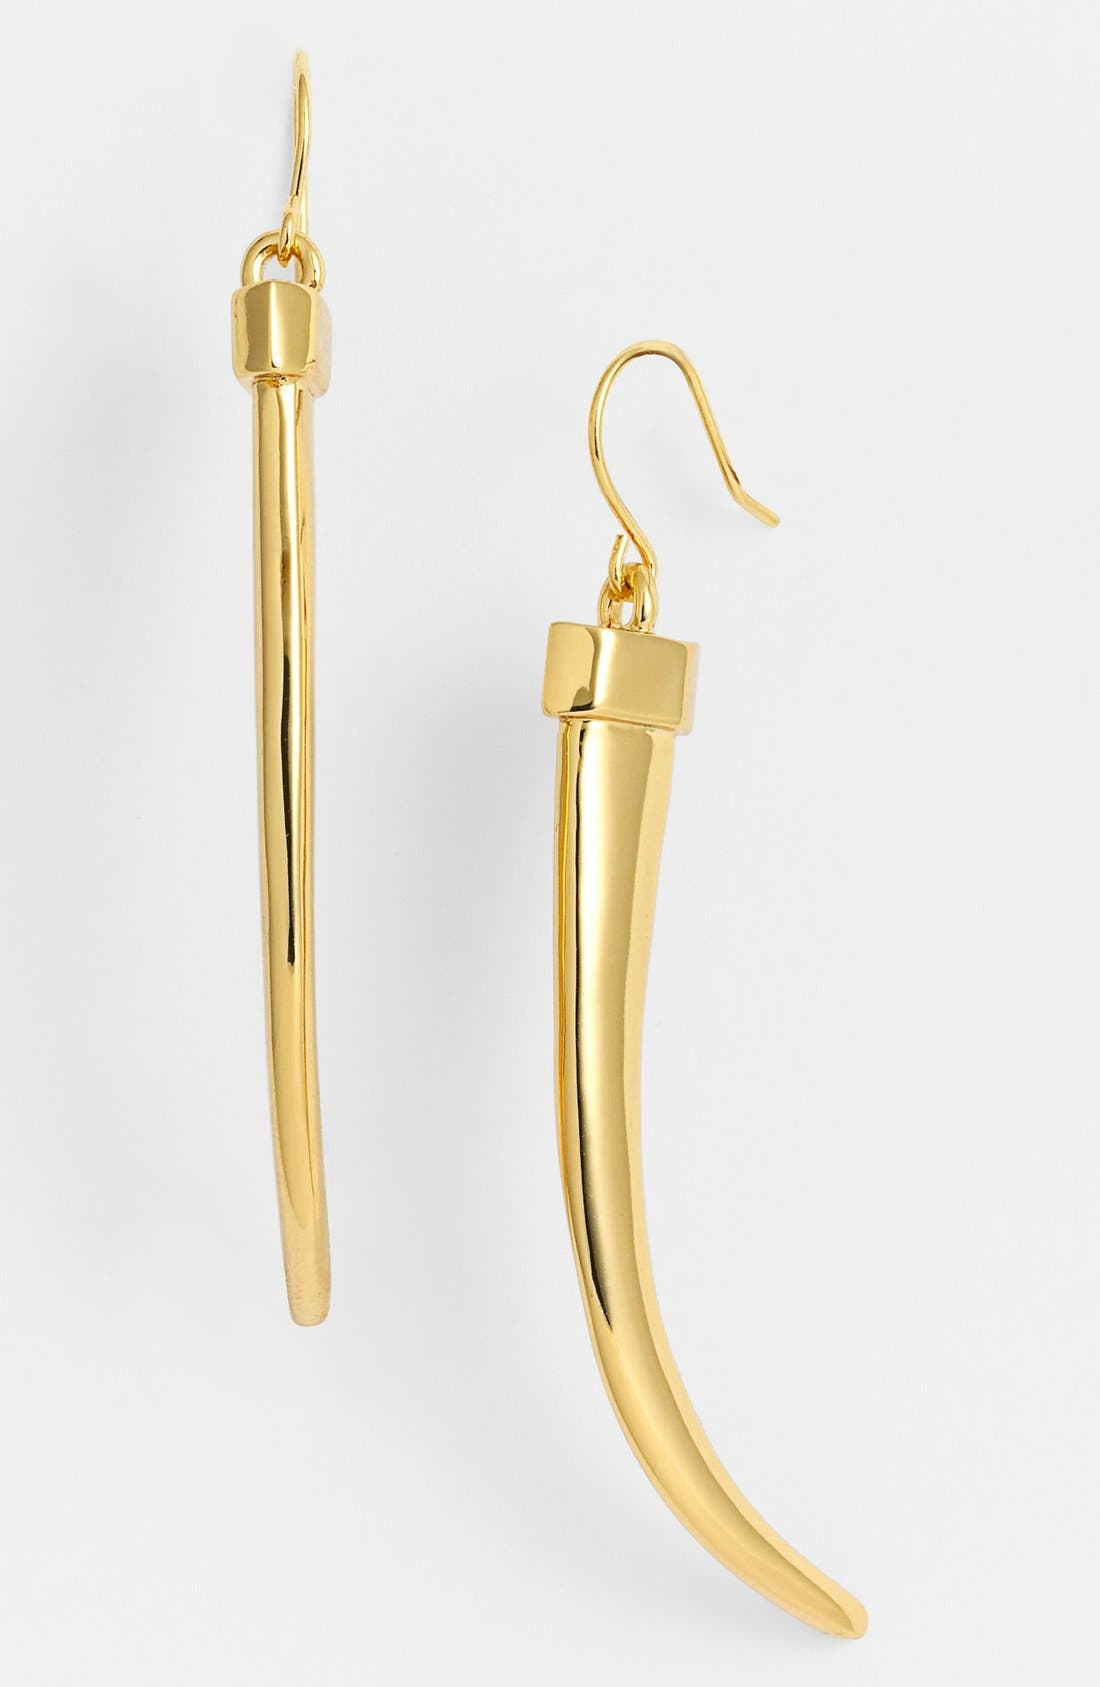 Alternate Image 1 Selected - Vince Camuto 'By the Horns' Linear Earrings